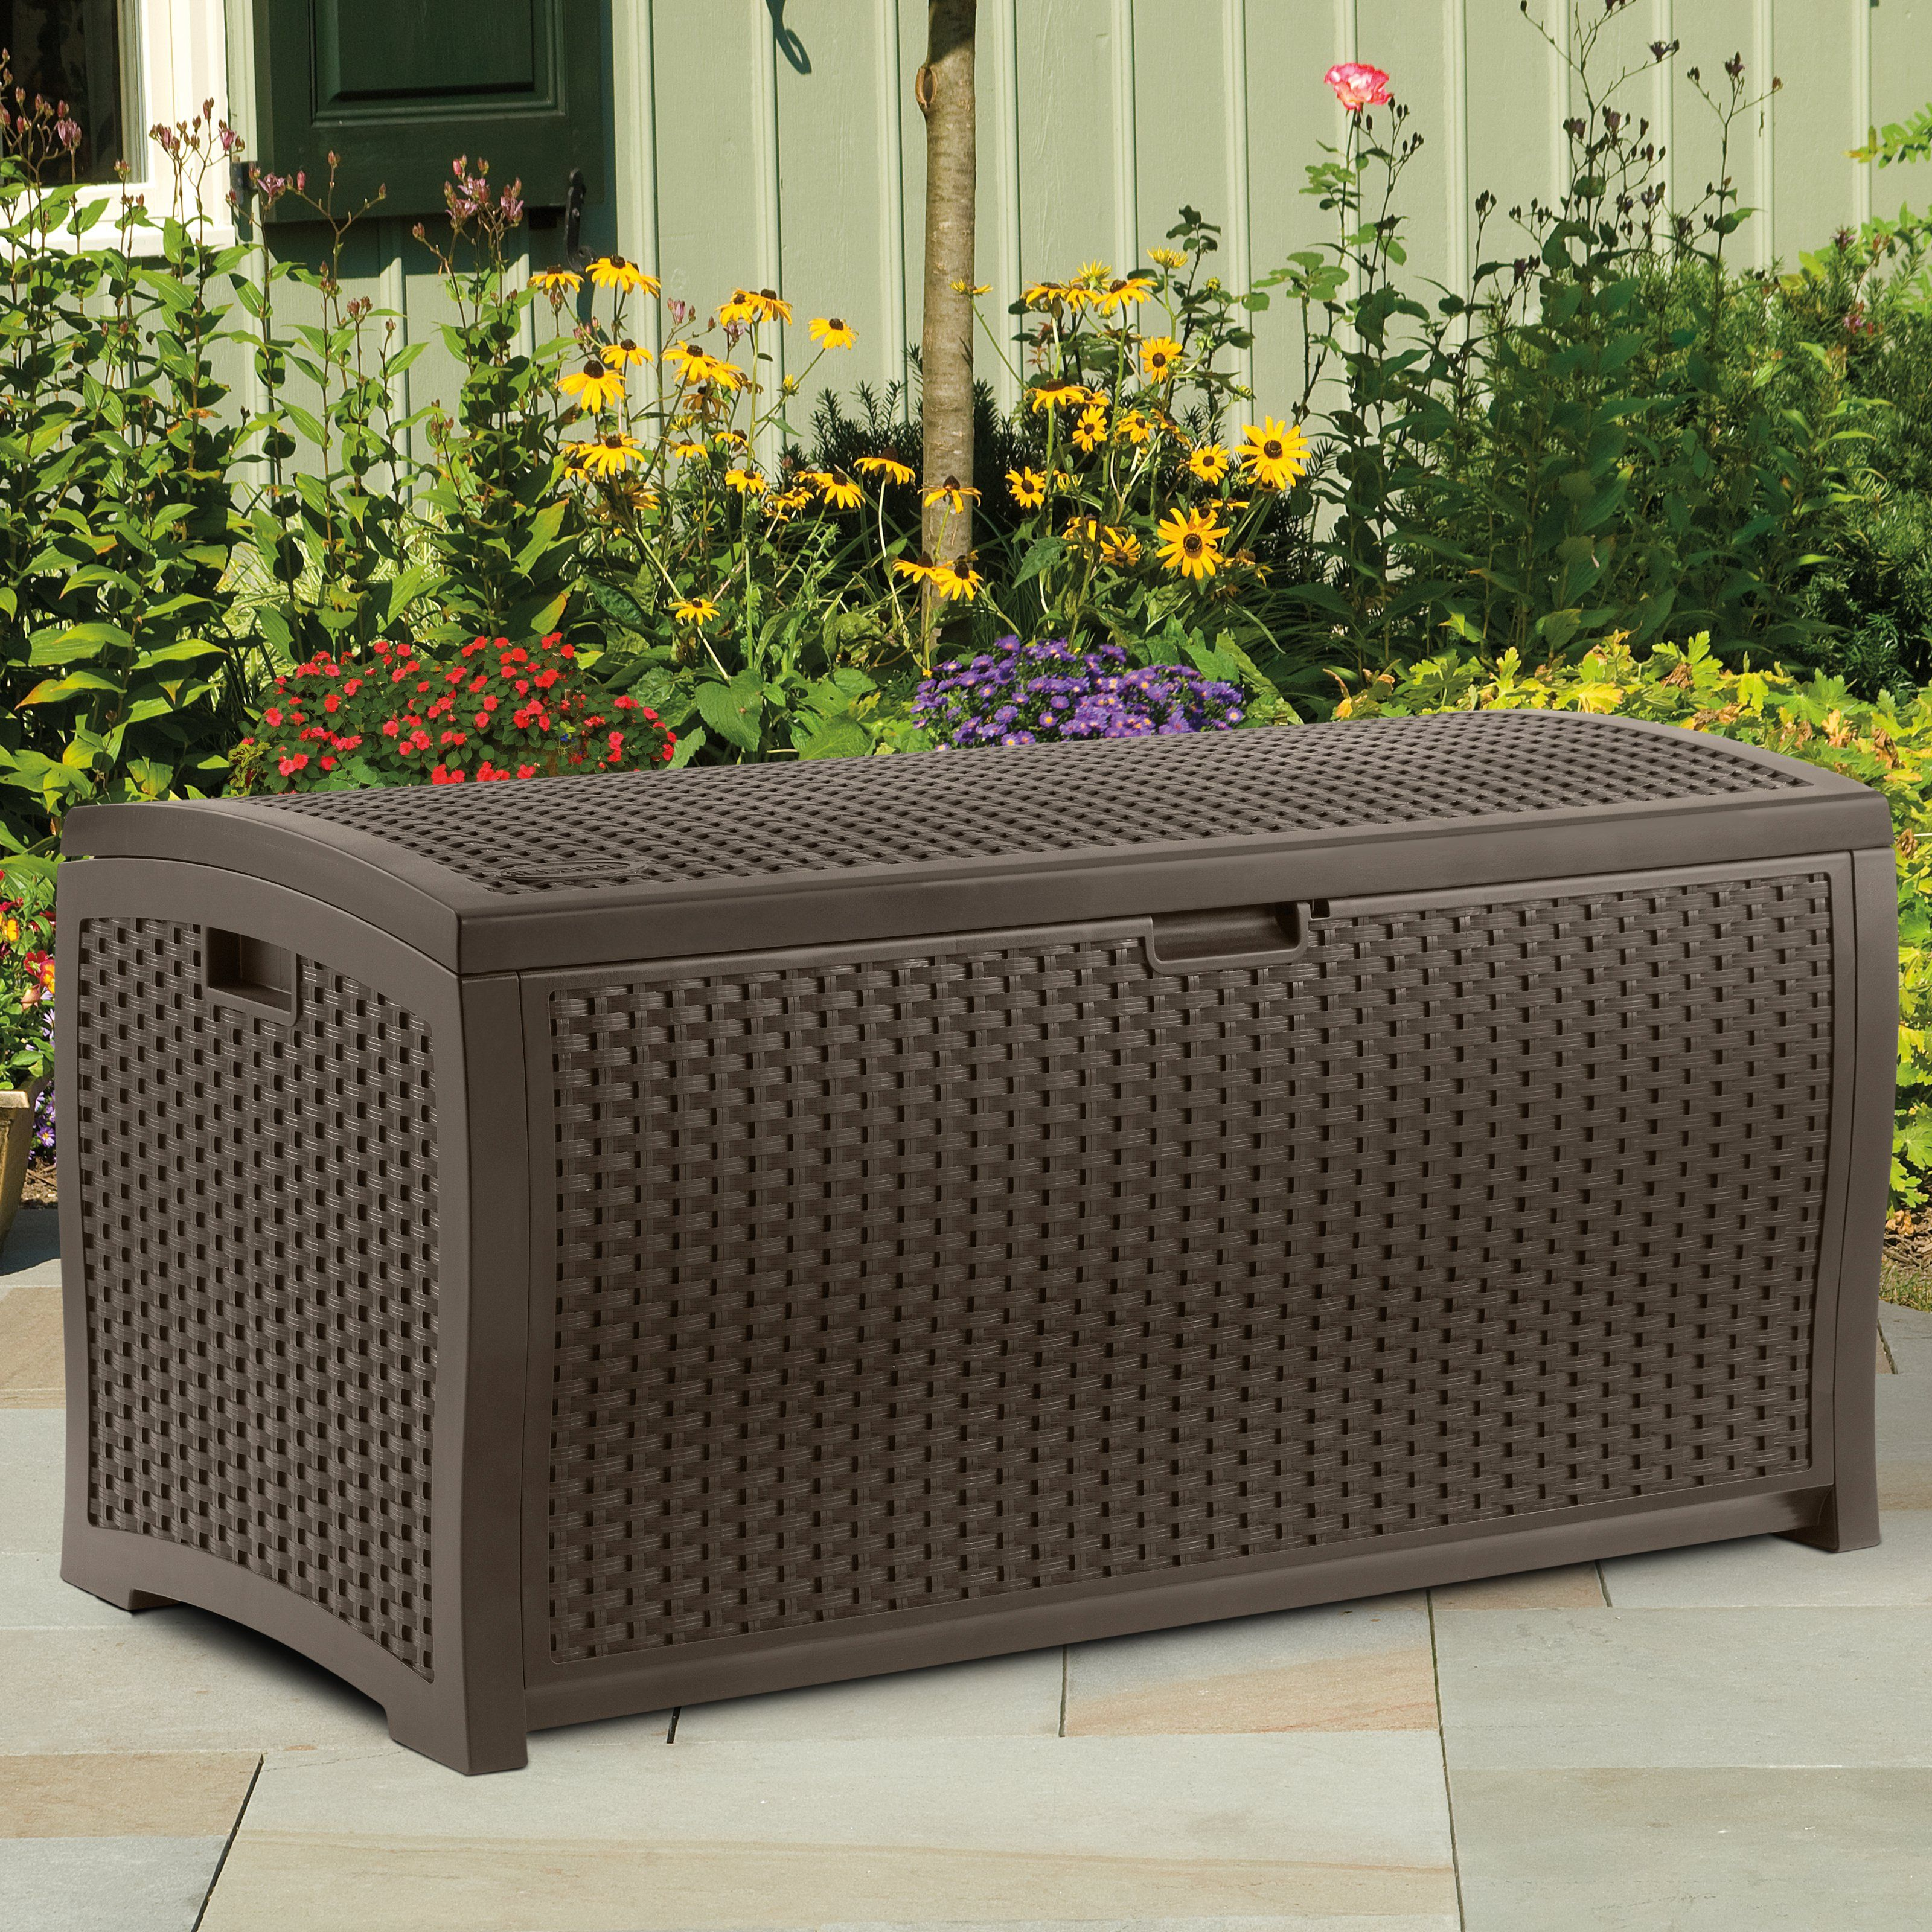 Suncast Resin Deck Box Mocha Brown The In Will Safely Your Outdoor Gear While Offering A Bonus Patio Seat